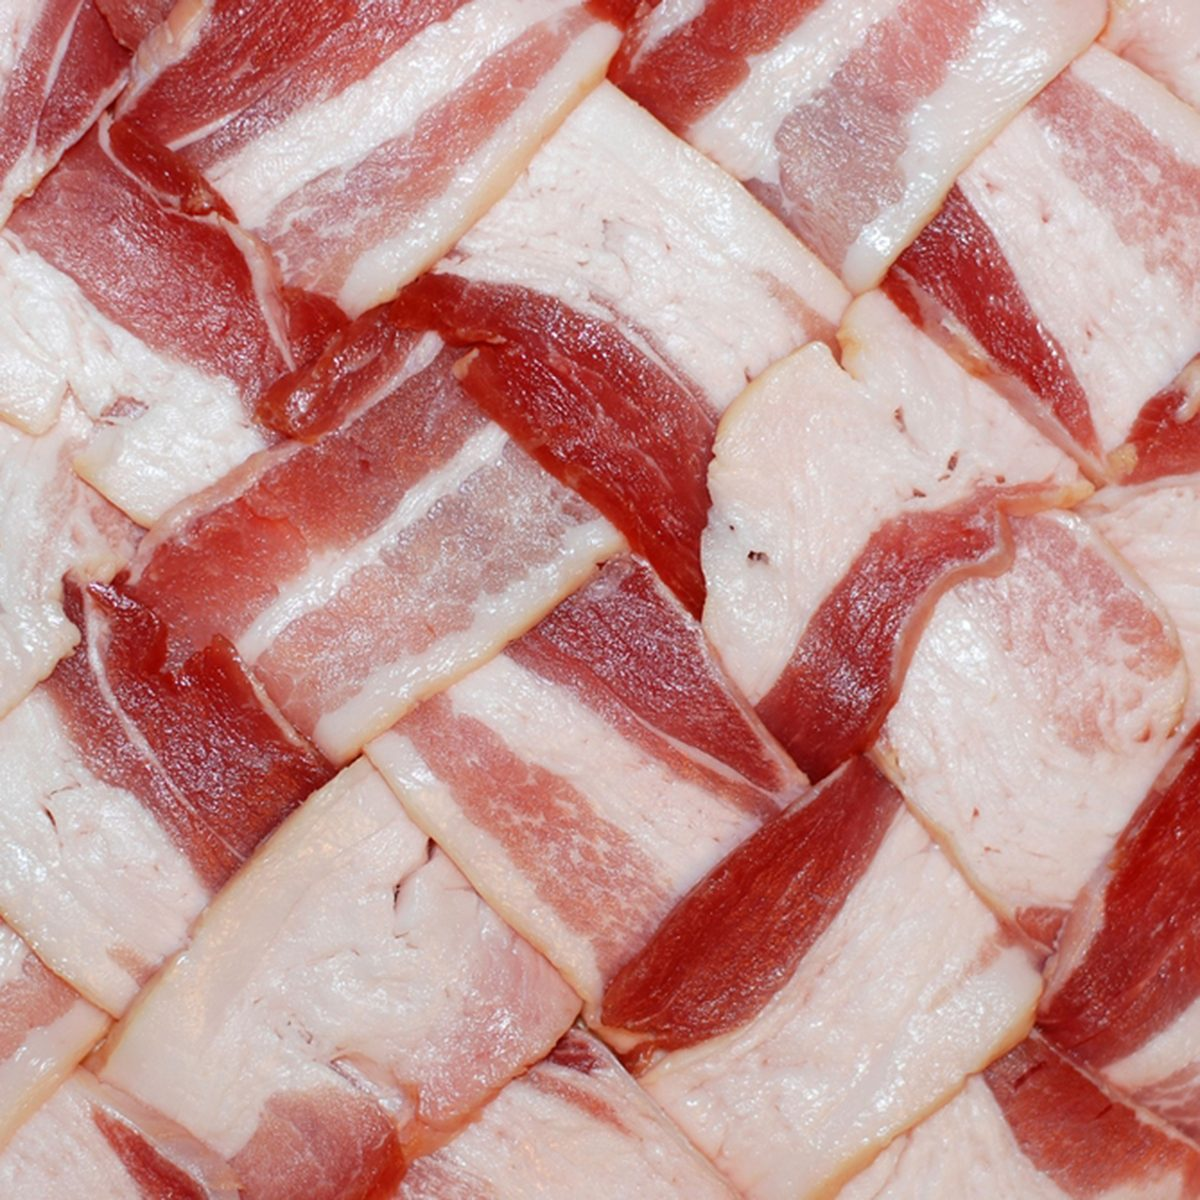 Bacon weaved into a pattern